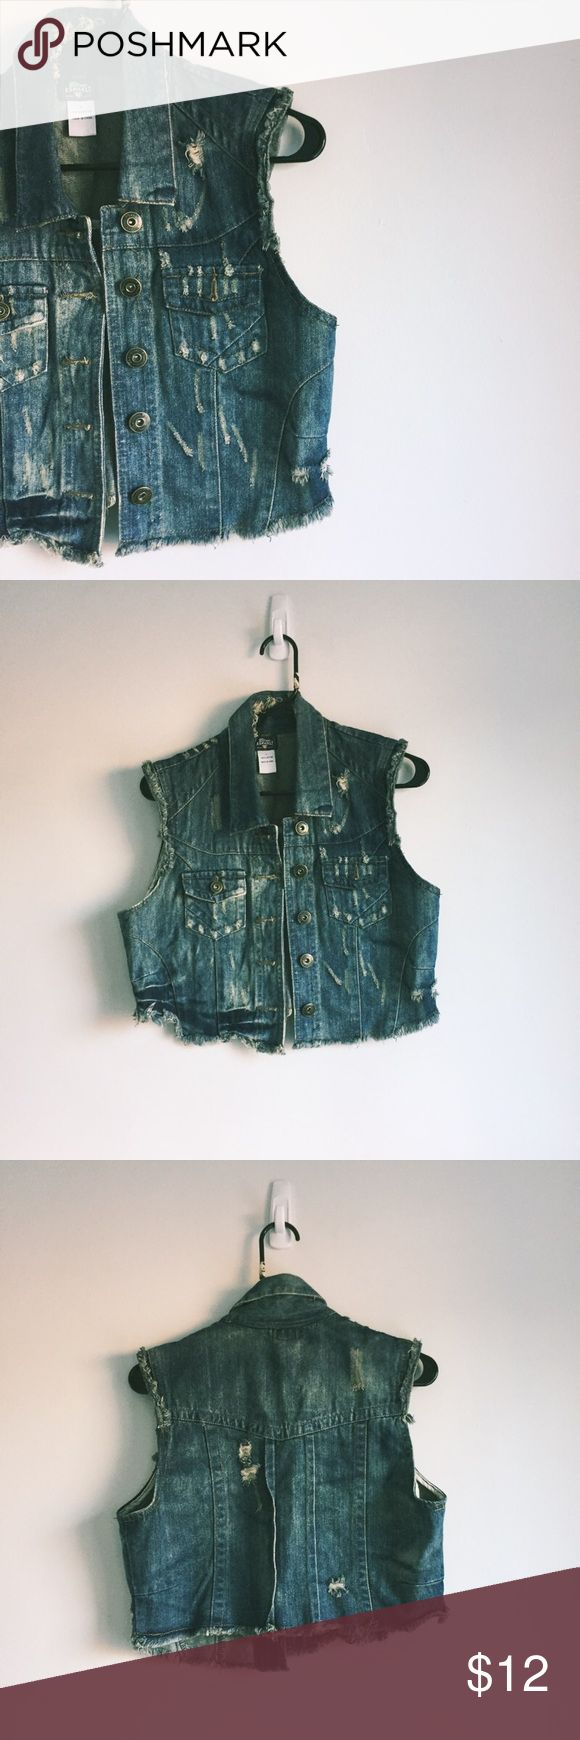 Blue Asphalt Crop Sleeveless Jean Jacket Blue Asphalt brand - Cropped, distressed jean jacket - Great layering piece to your outfit - Size: L - Made of 100% cotton - Some wrinkles from storage, but in great condition - Please ask any questions! Blue Asphalt Jackets & Coats Jean Jackets